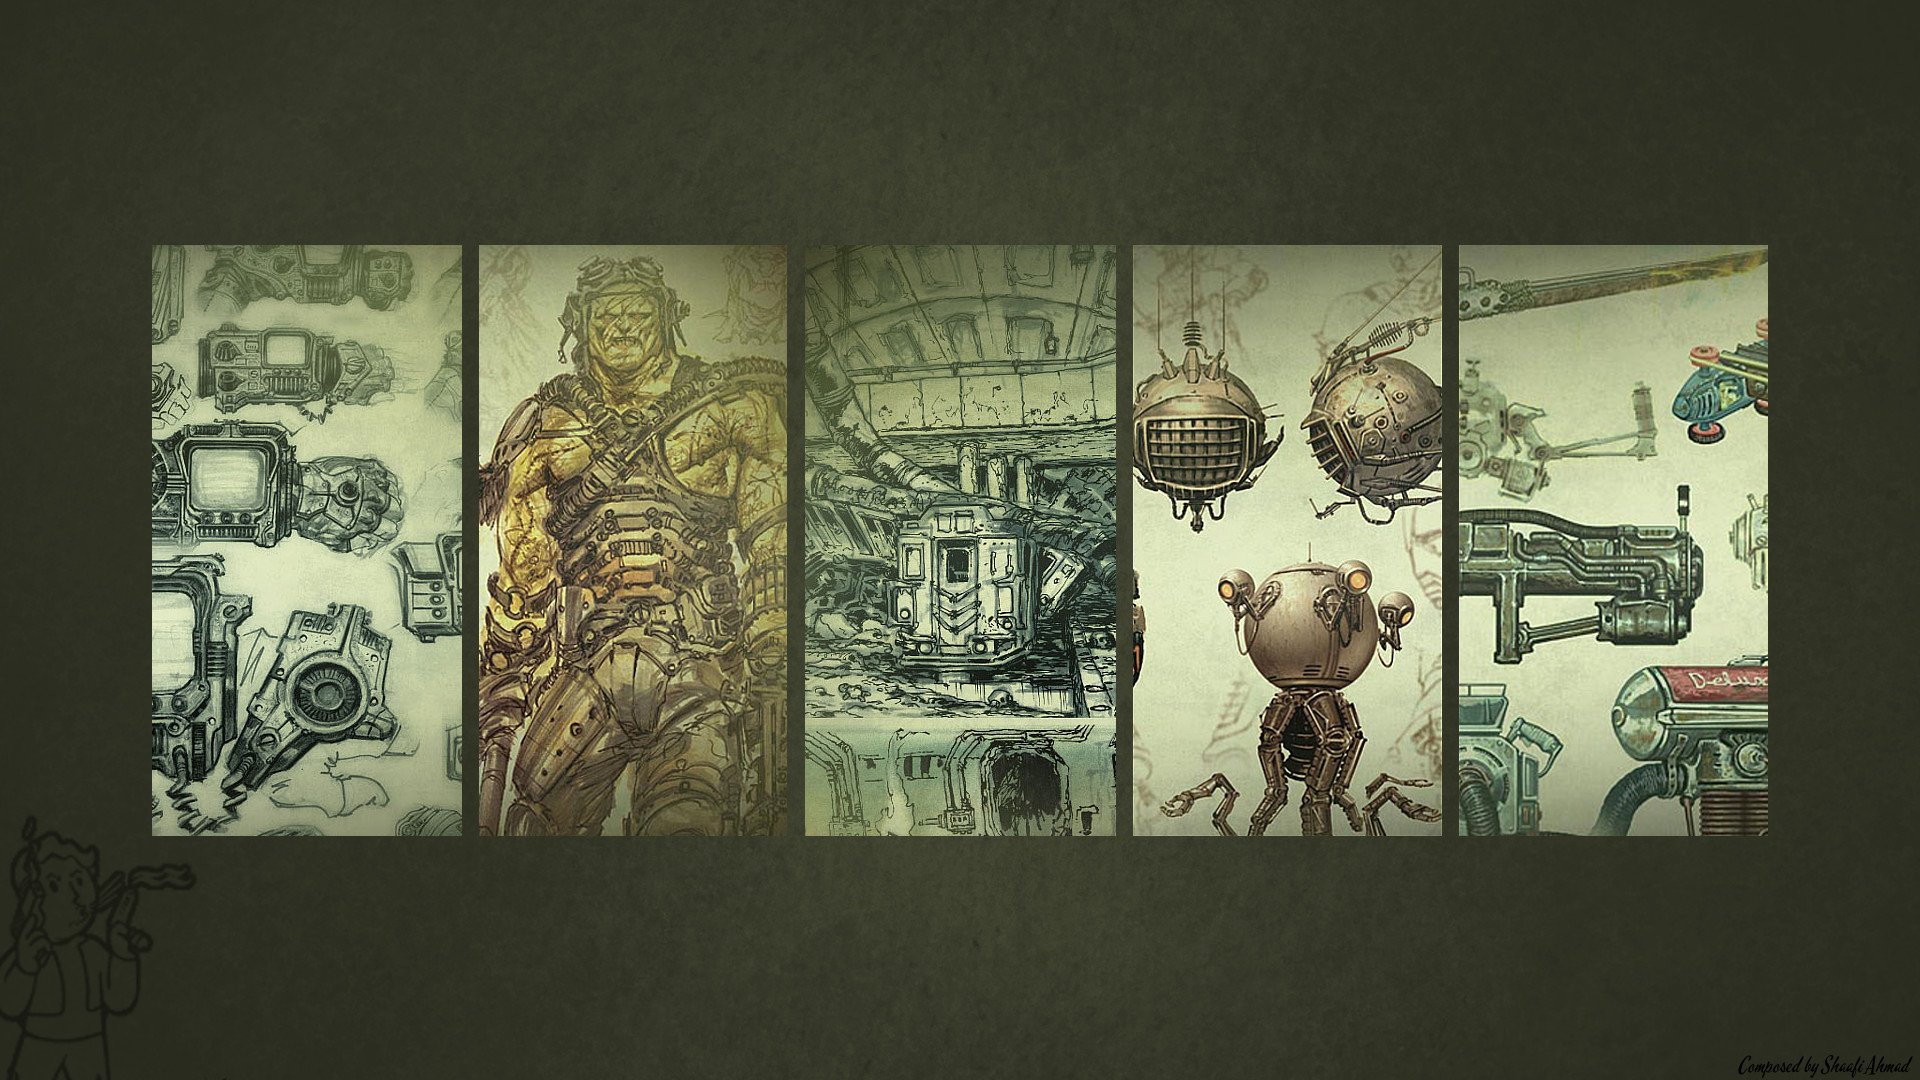 1920x1080 HD Fallout Wallpapers and Photos,  | By Florinda Langford